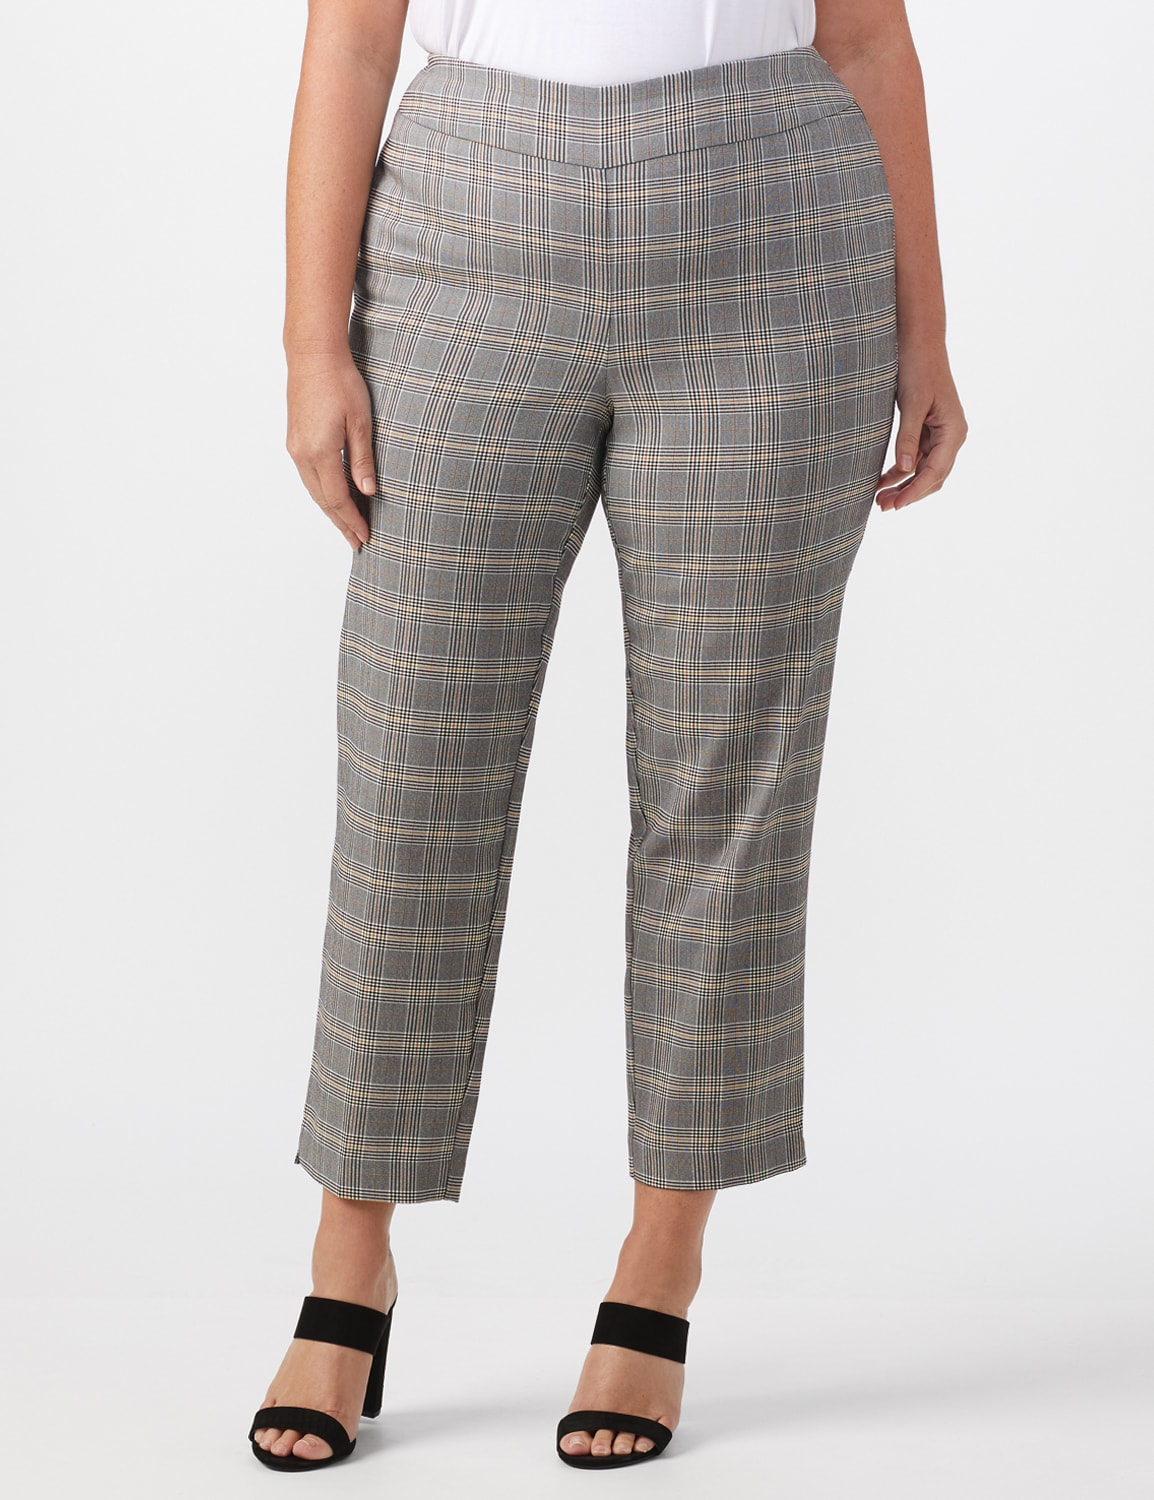 Roz & Ali Yarn Dye Plaid Pull On Waist Ankle Pant - Plus - Black/Grey - Front